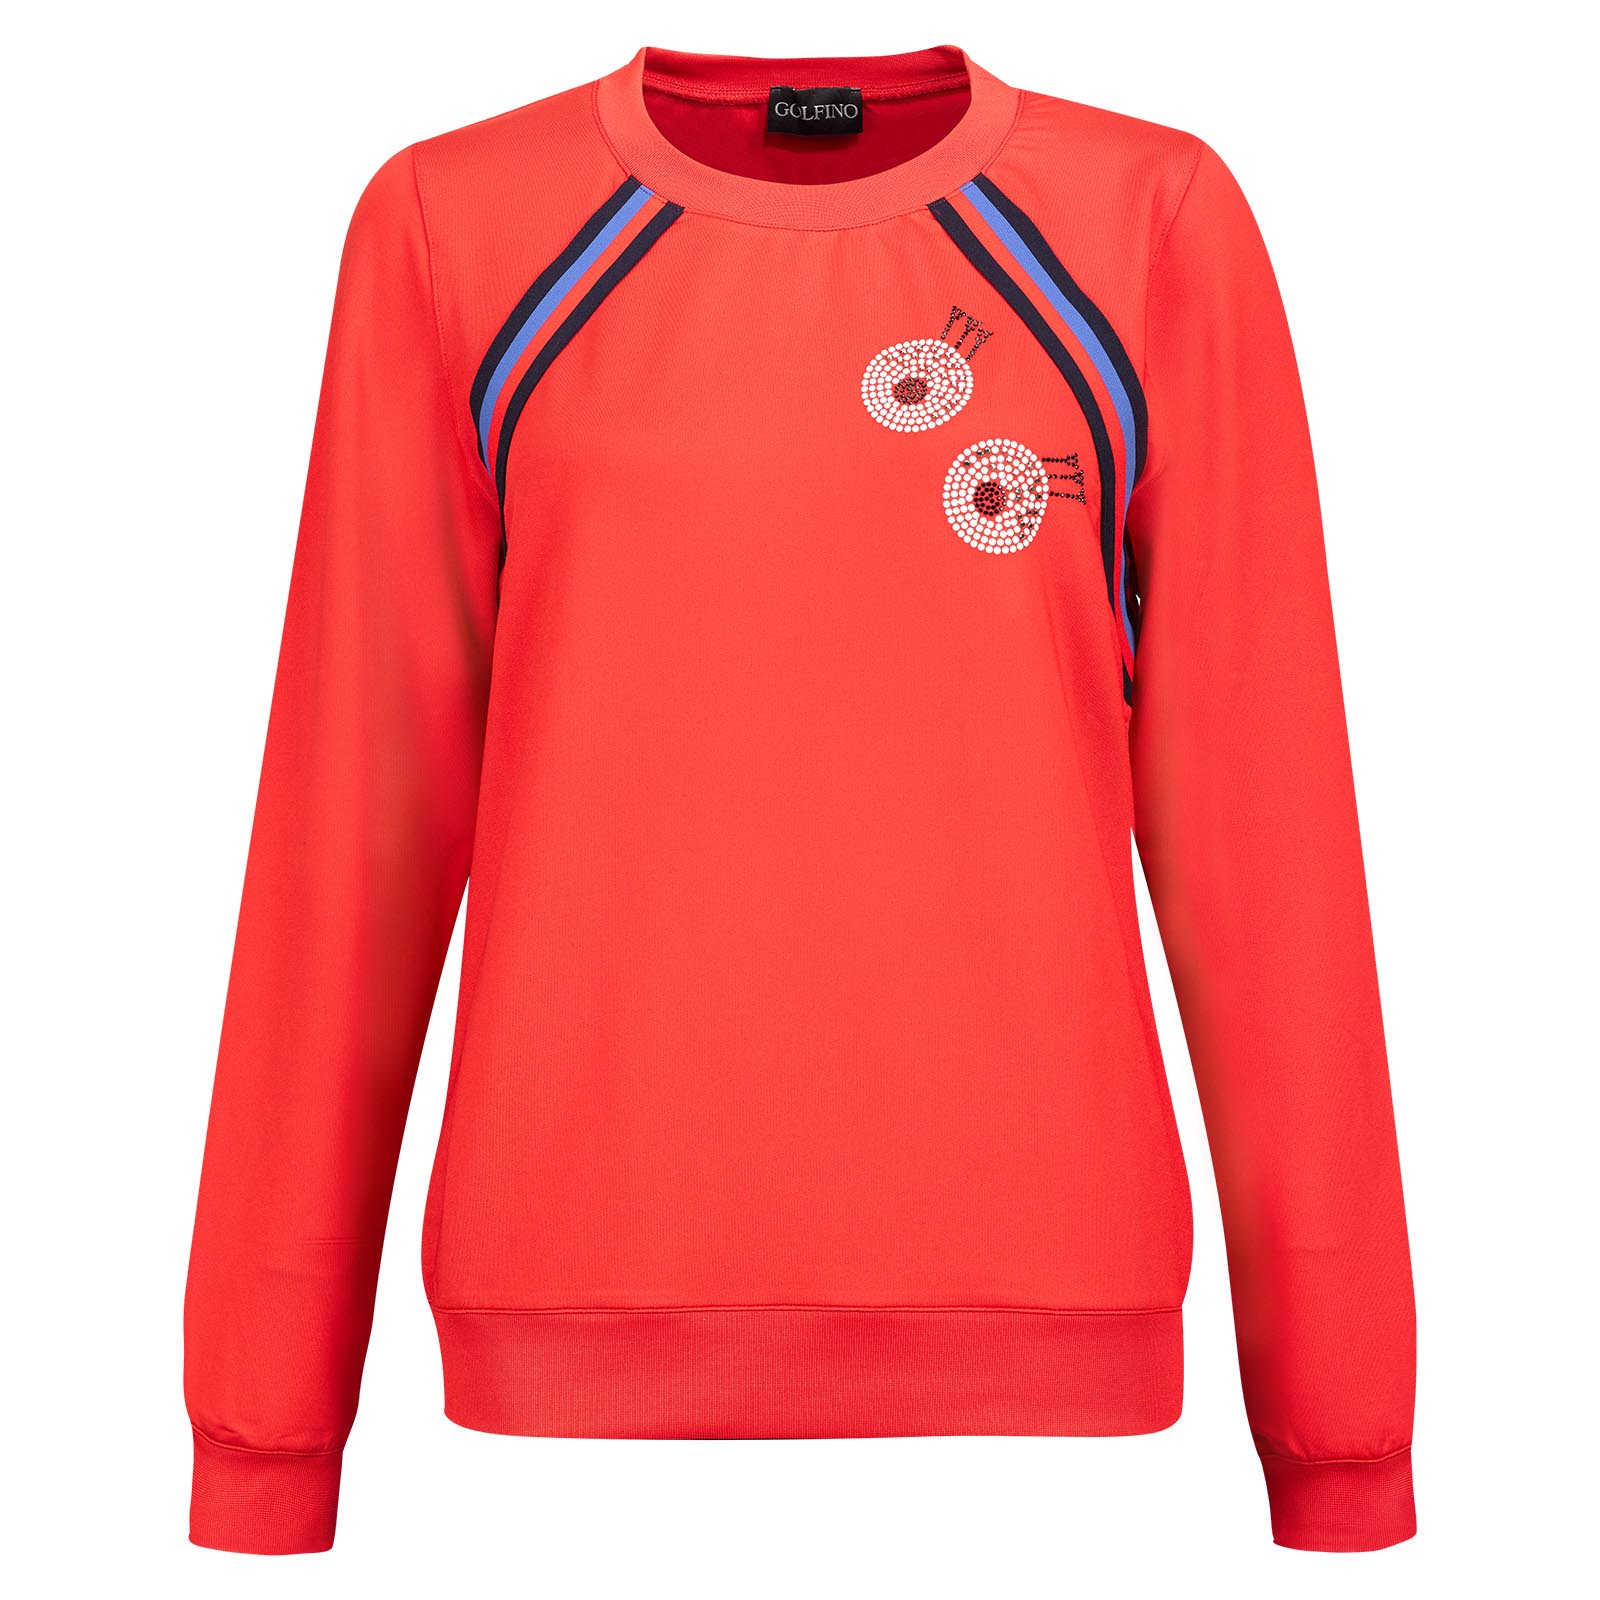 Damen Retro Sport Sweater mit Stretch Funktion und modischem Strass